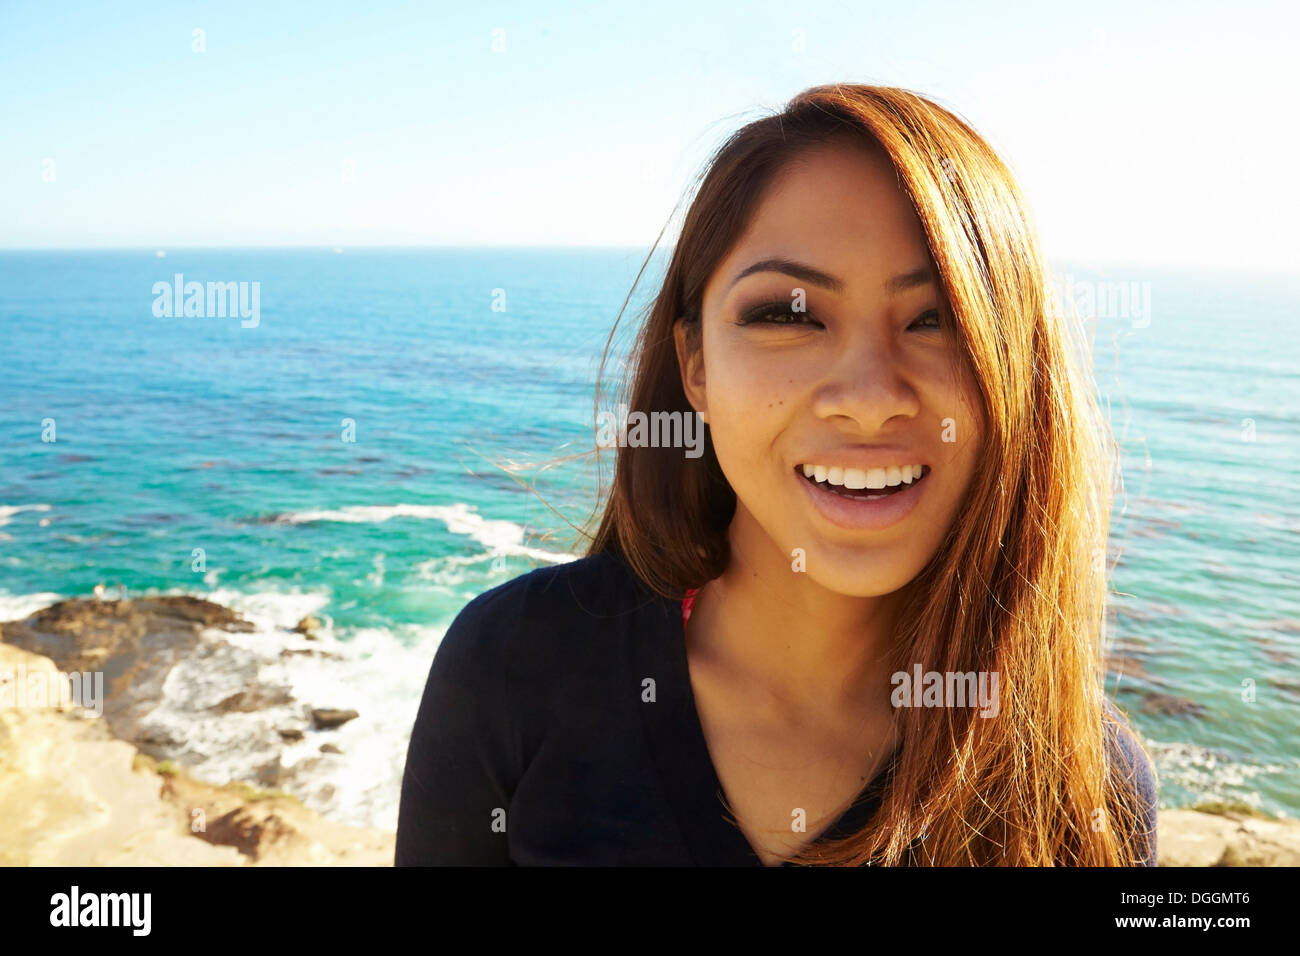 Portrait of young woman smiling, Palos Verdes, California, USA - Stock Image